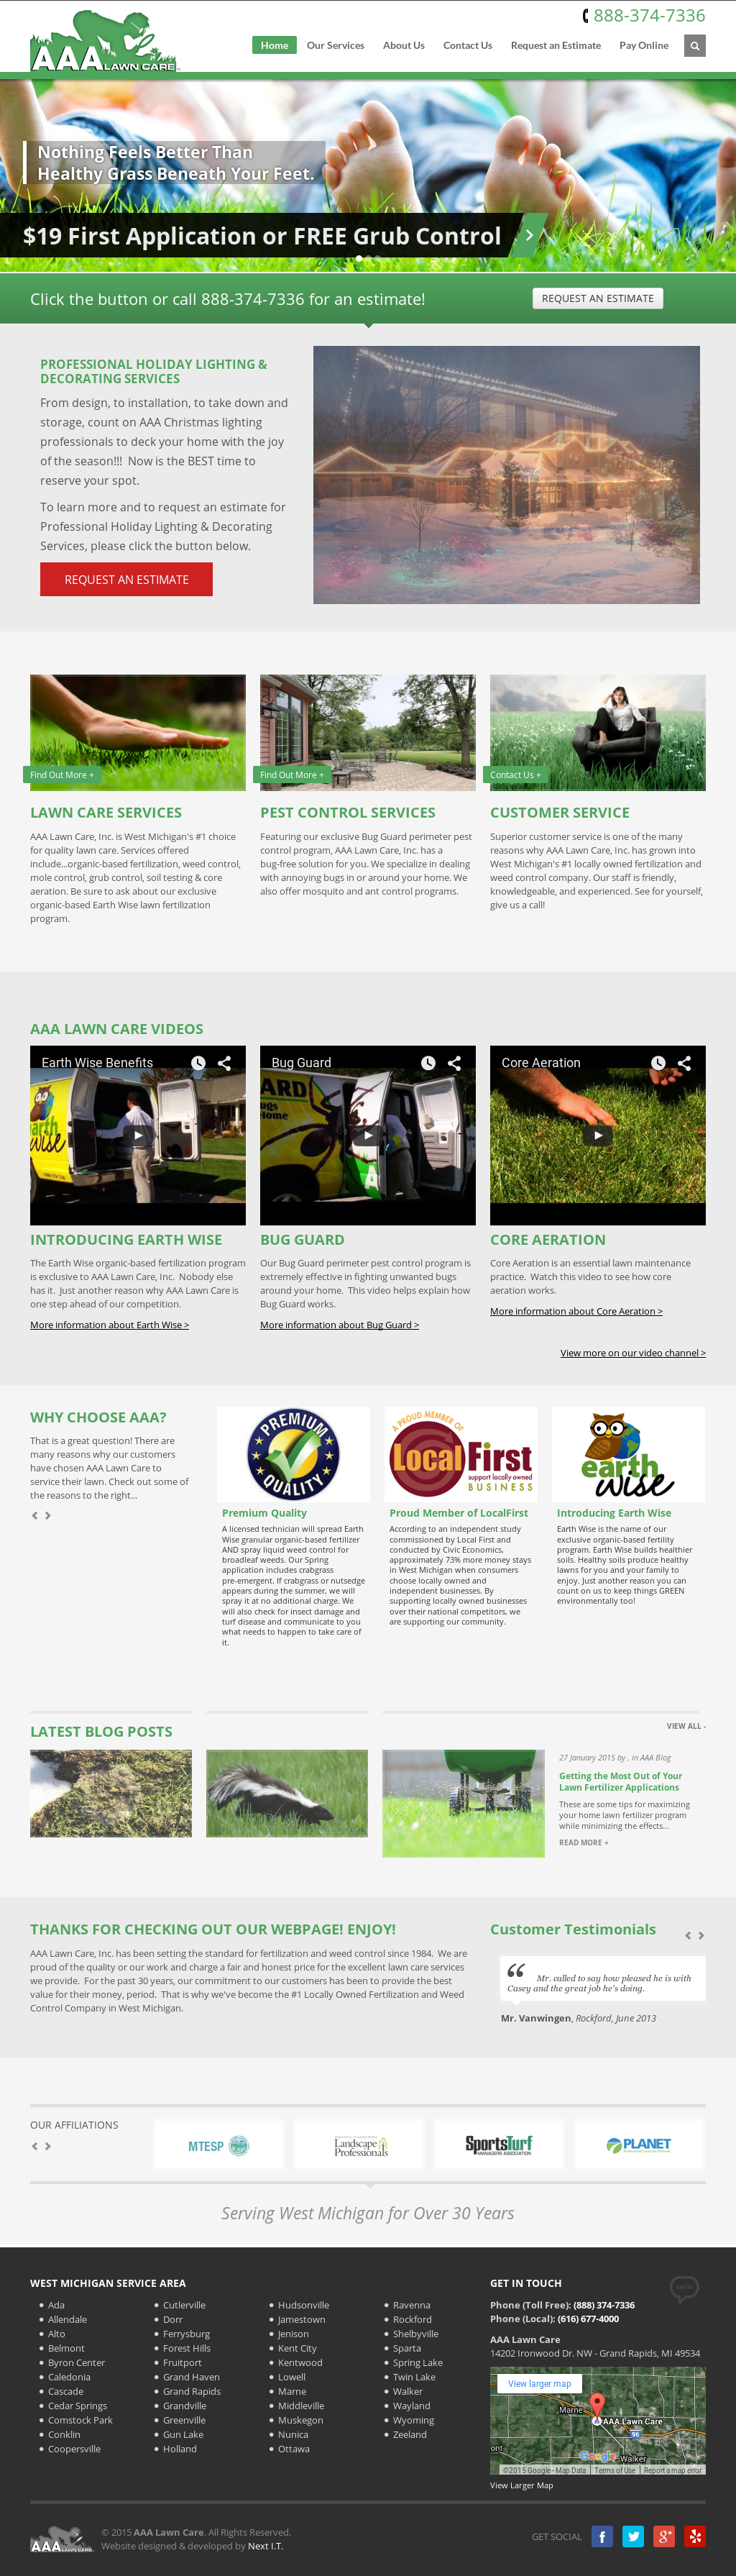 A A A Lawn Care Competitors, Revenue and Employees - Owler